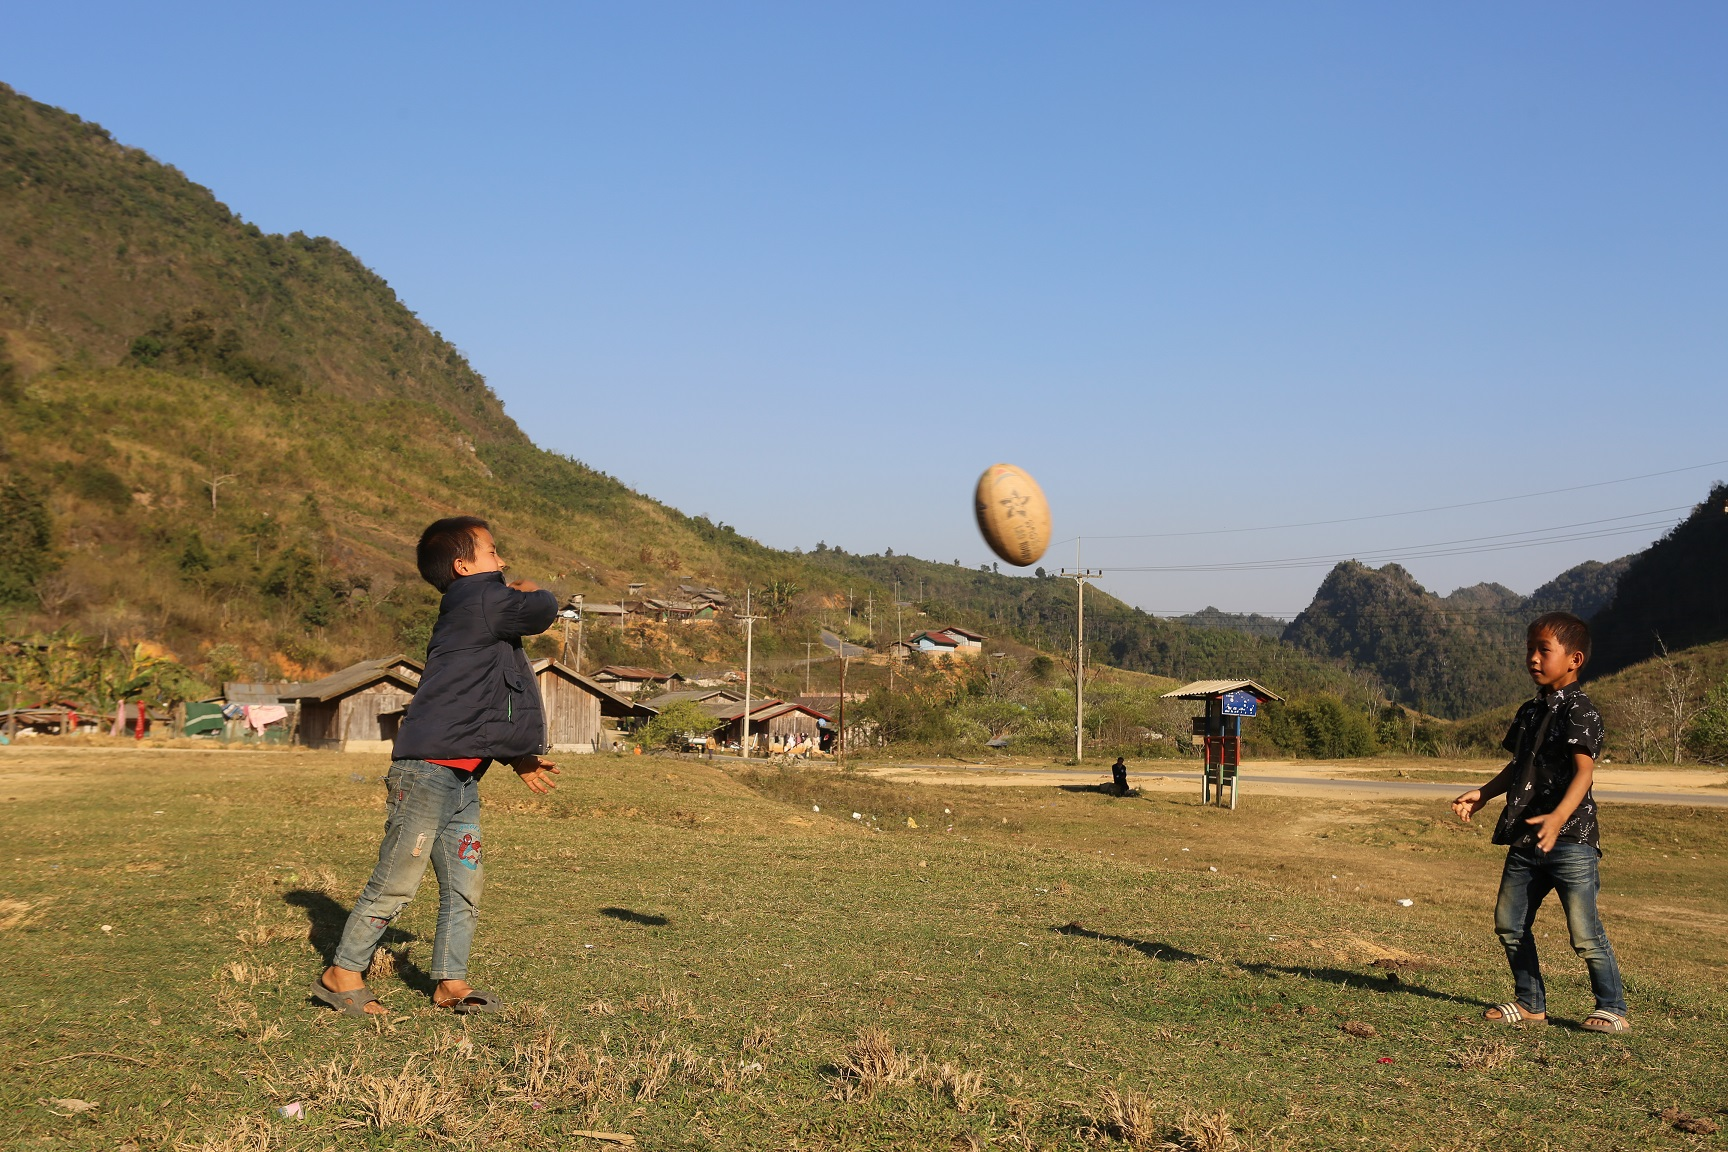 Two boys in a rural area throw a rugby ball to each other